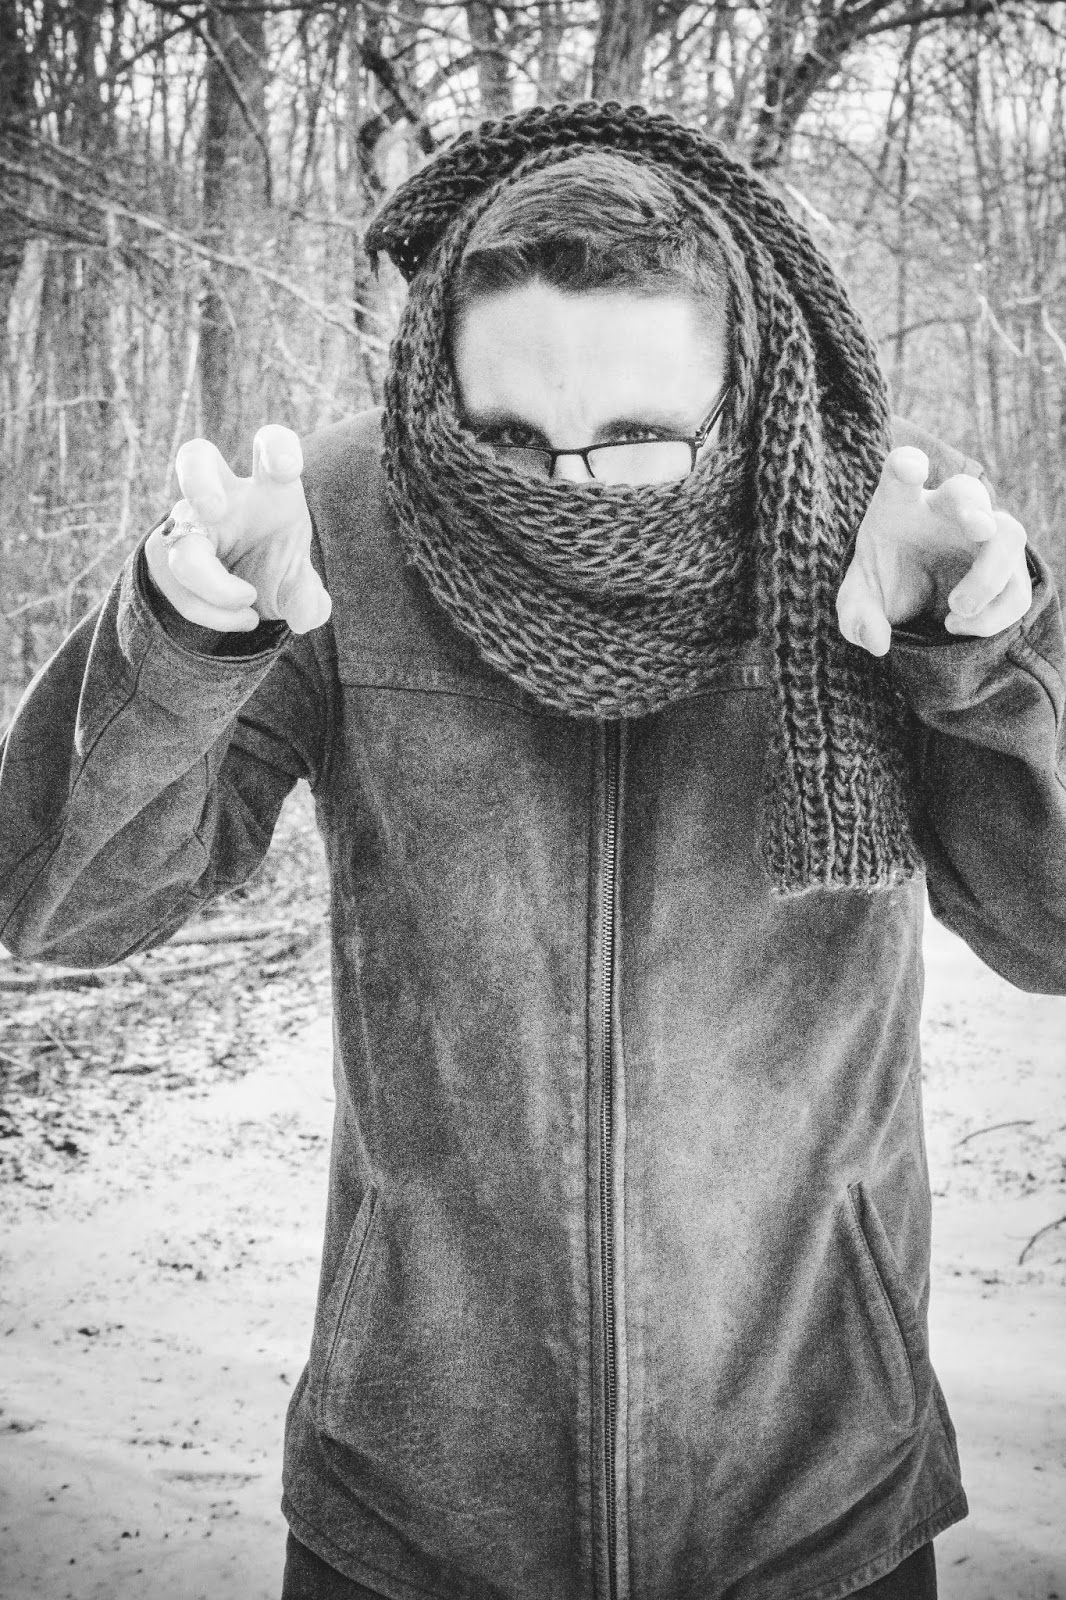 are we out of the woods yet snow georgia outdoors winter photography trees scarf bear silly man glasses grr leather jacket